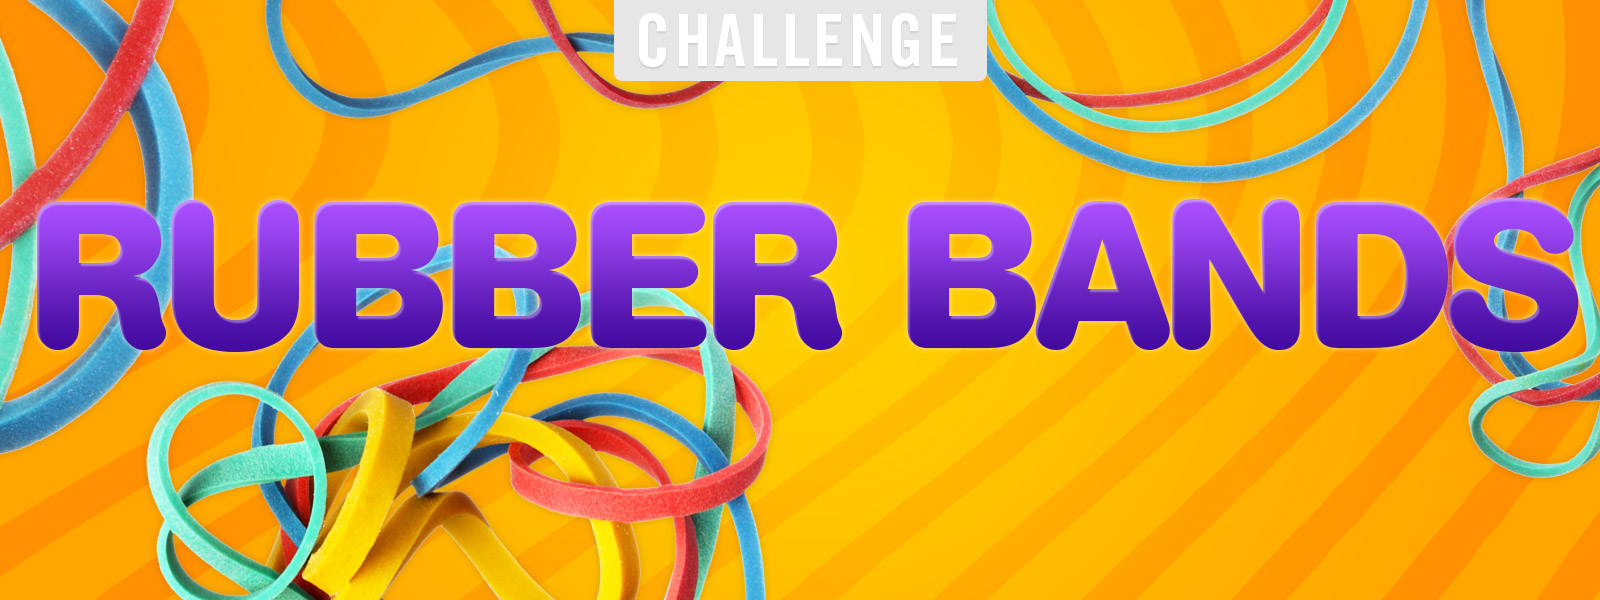 Rubber Bands Challenge